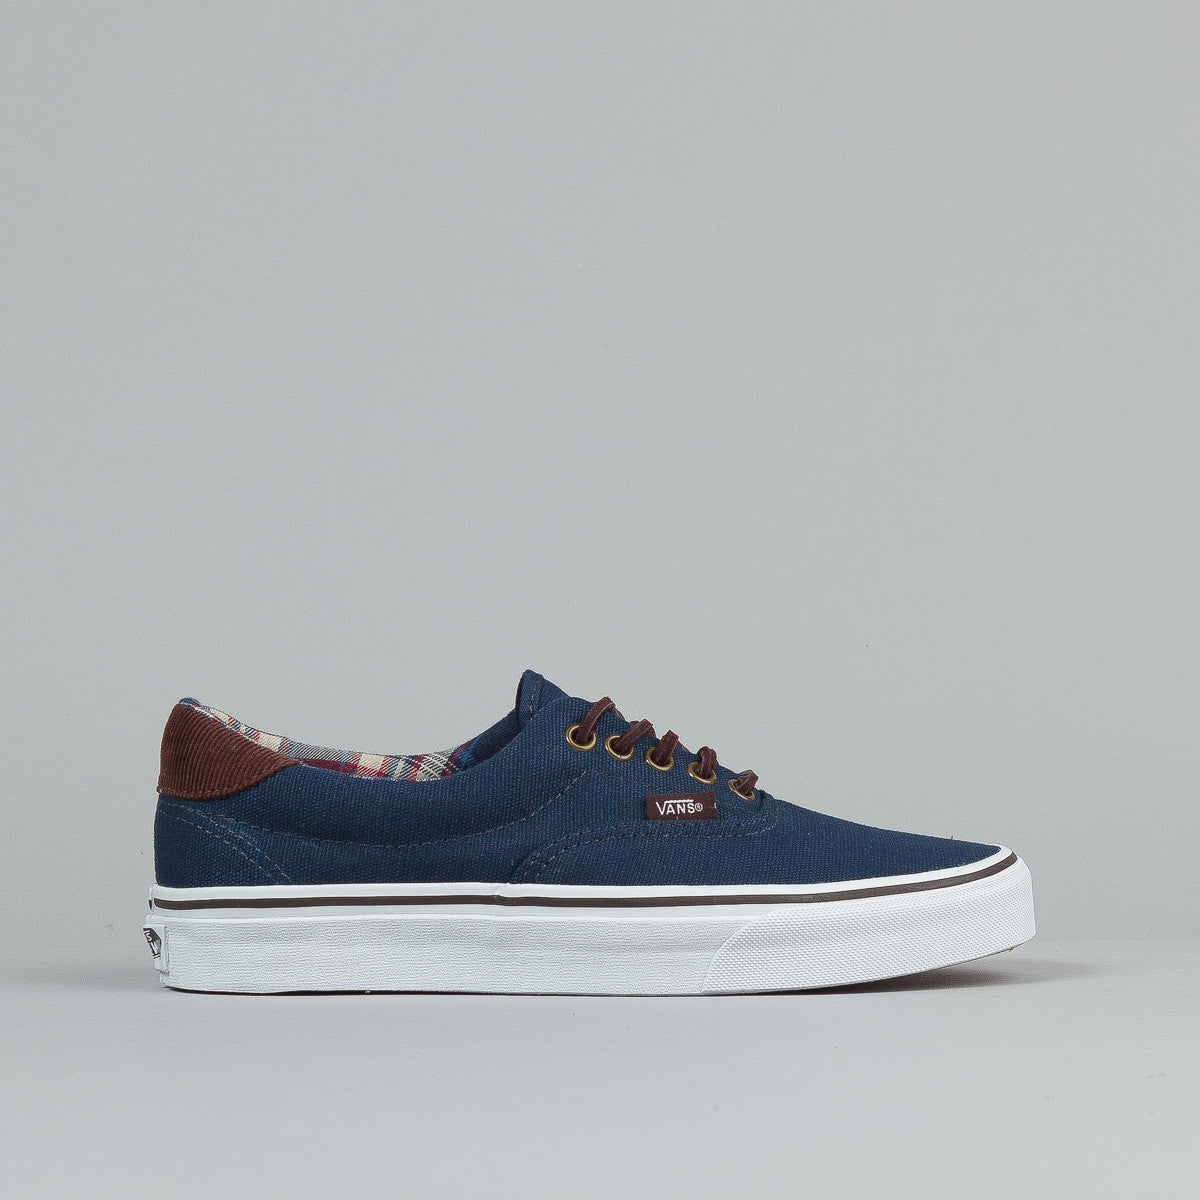 Vans Era 59 Shoes (C&P)